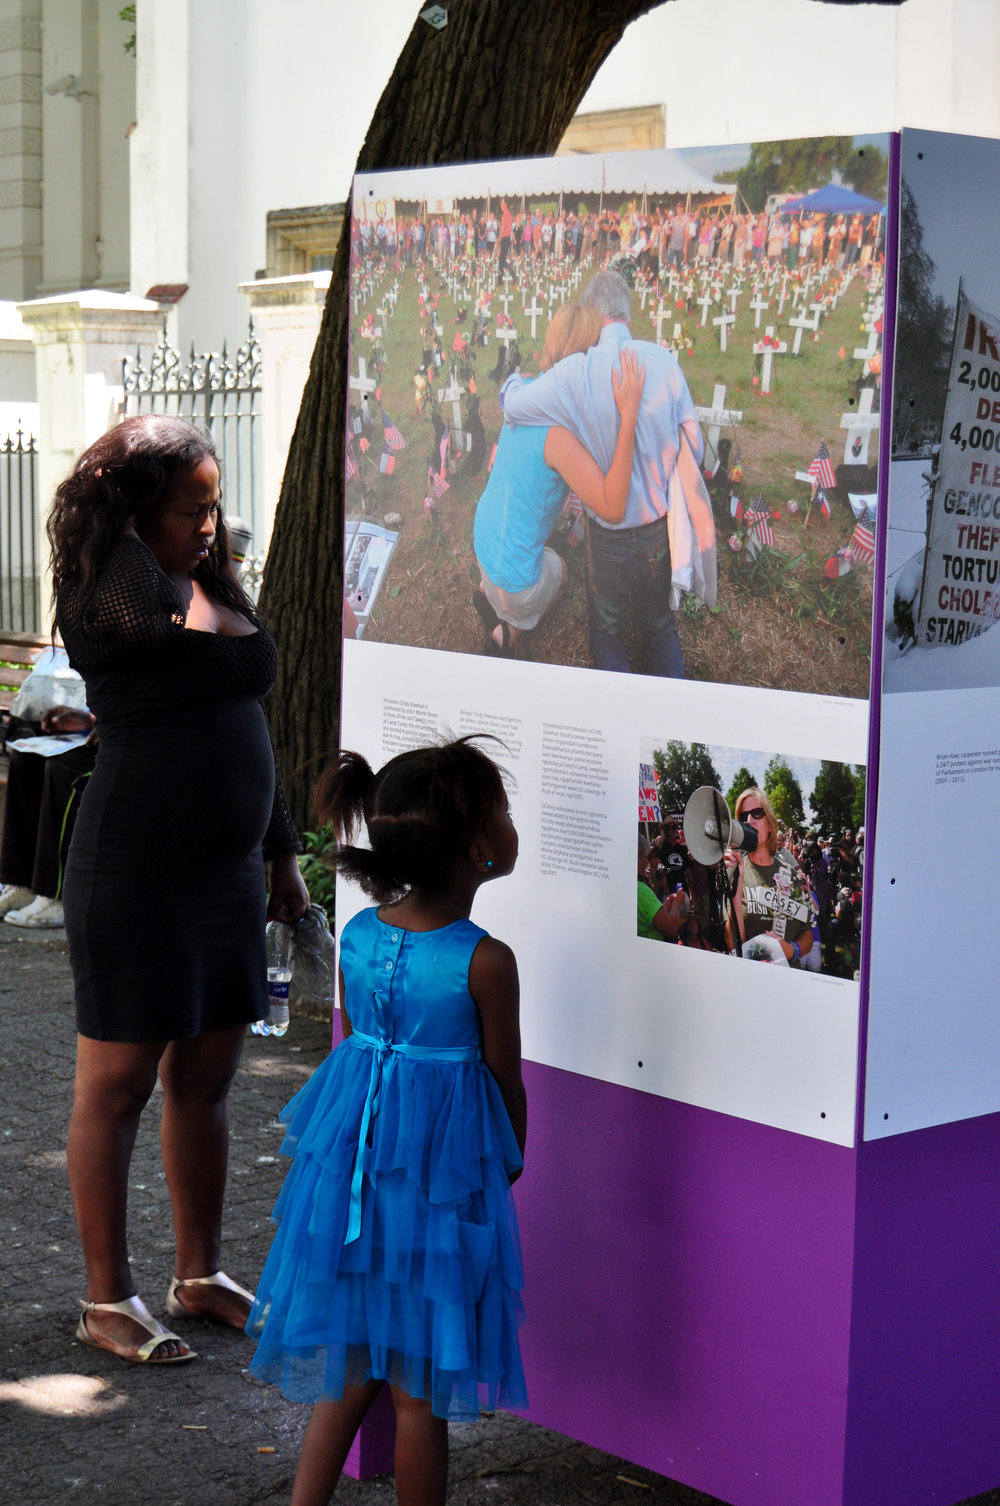 A young girl stops to read one of the exhibition pieces.